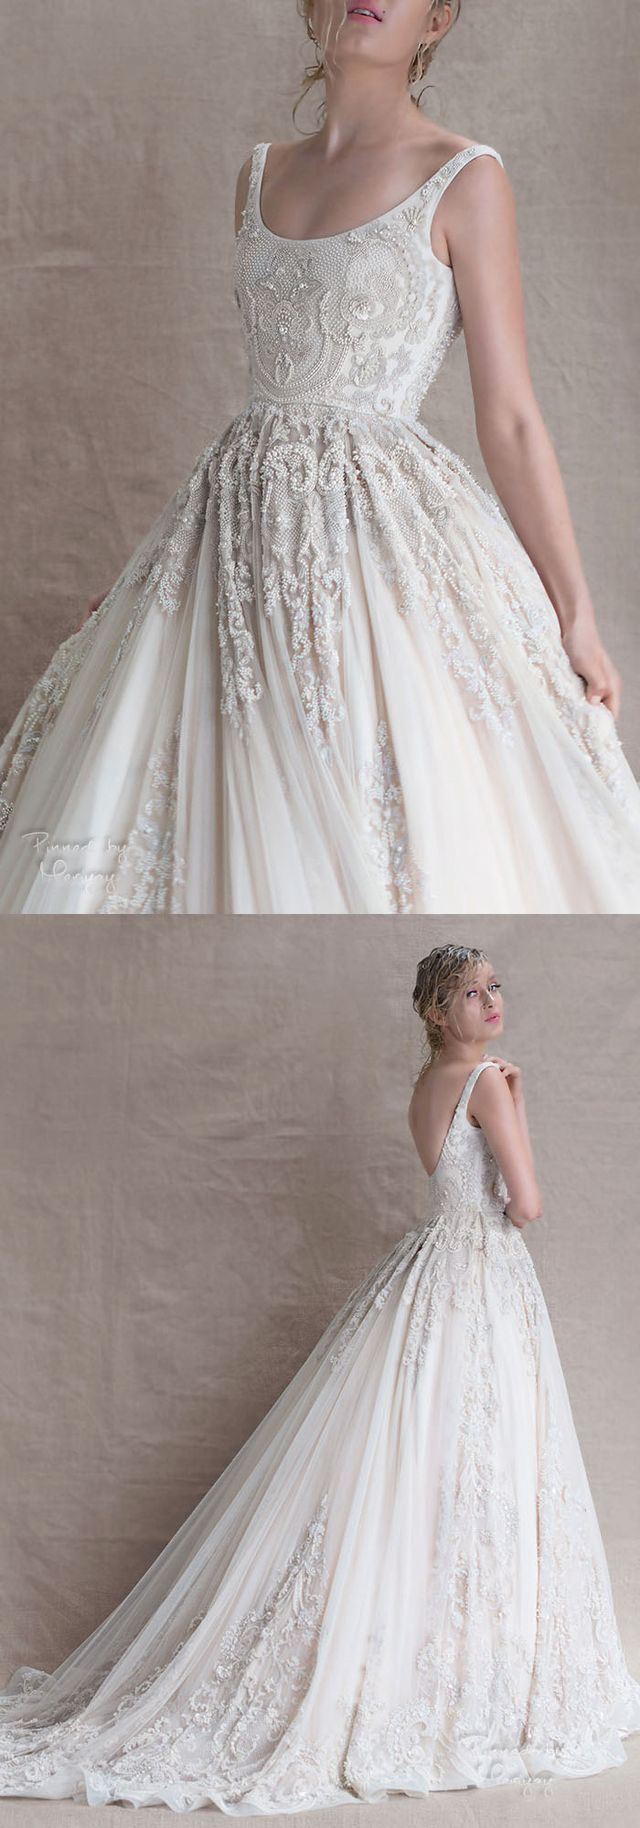 Pin by AyQ on Couture | Pinterest | Wedding dress, Wedding and Wedding